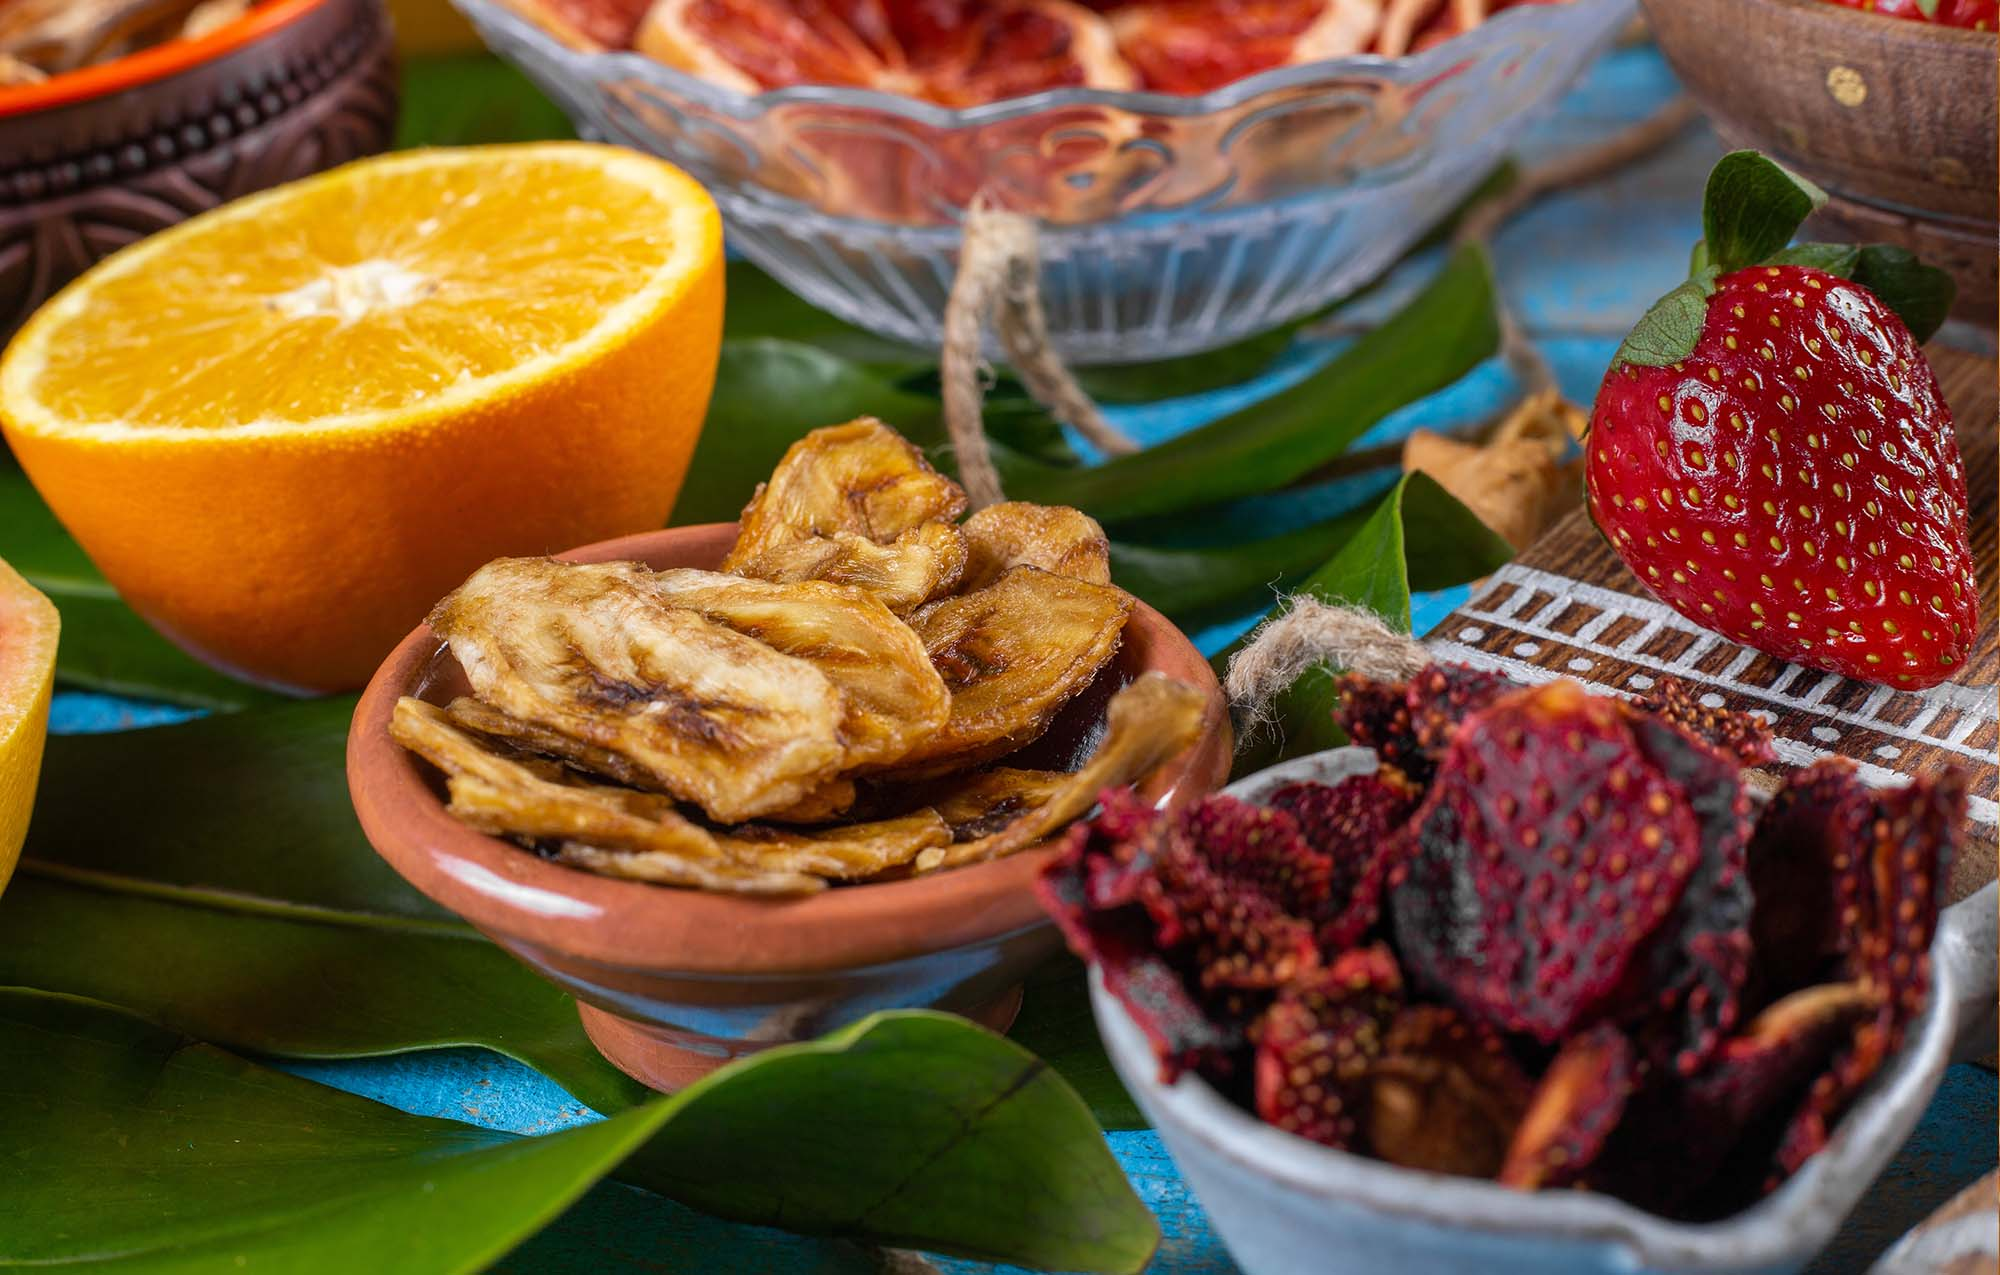 Minnies Dried Fruits - real fruit, natural energy - click to order your dried food online, home and office healthy snacks delivery, for adults and children